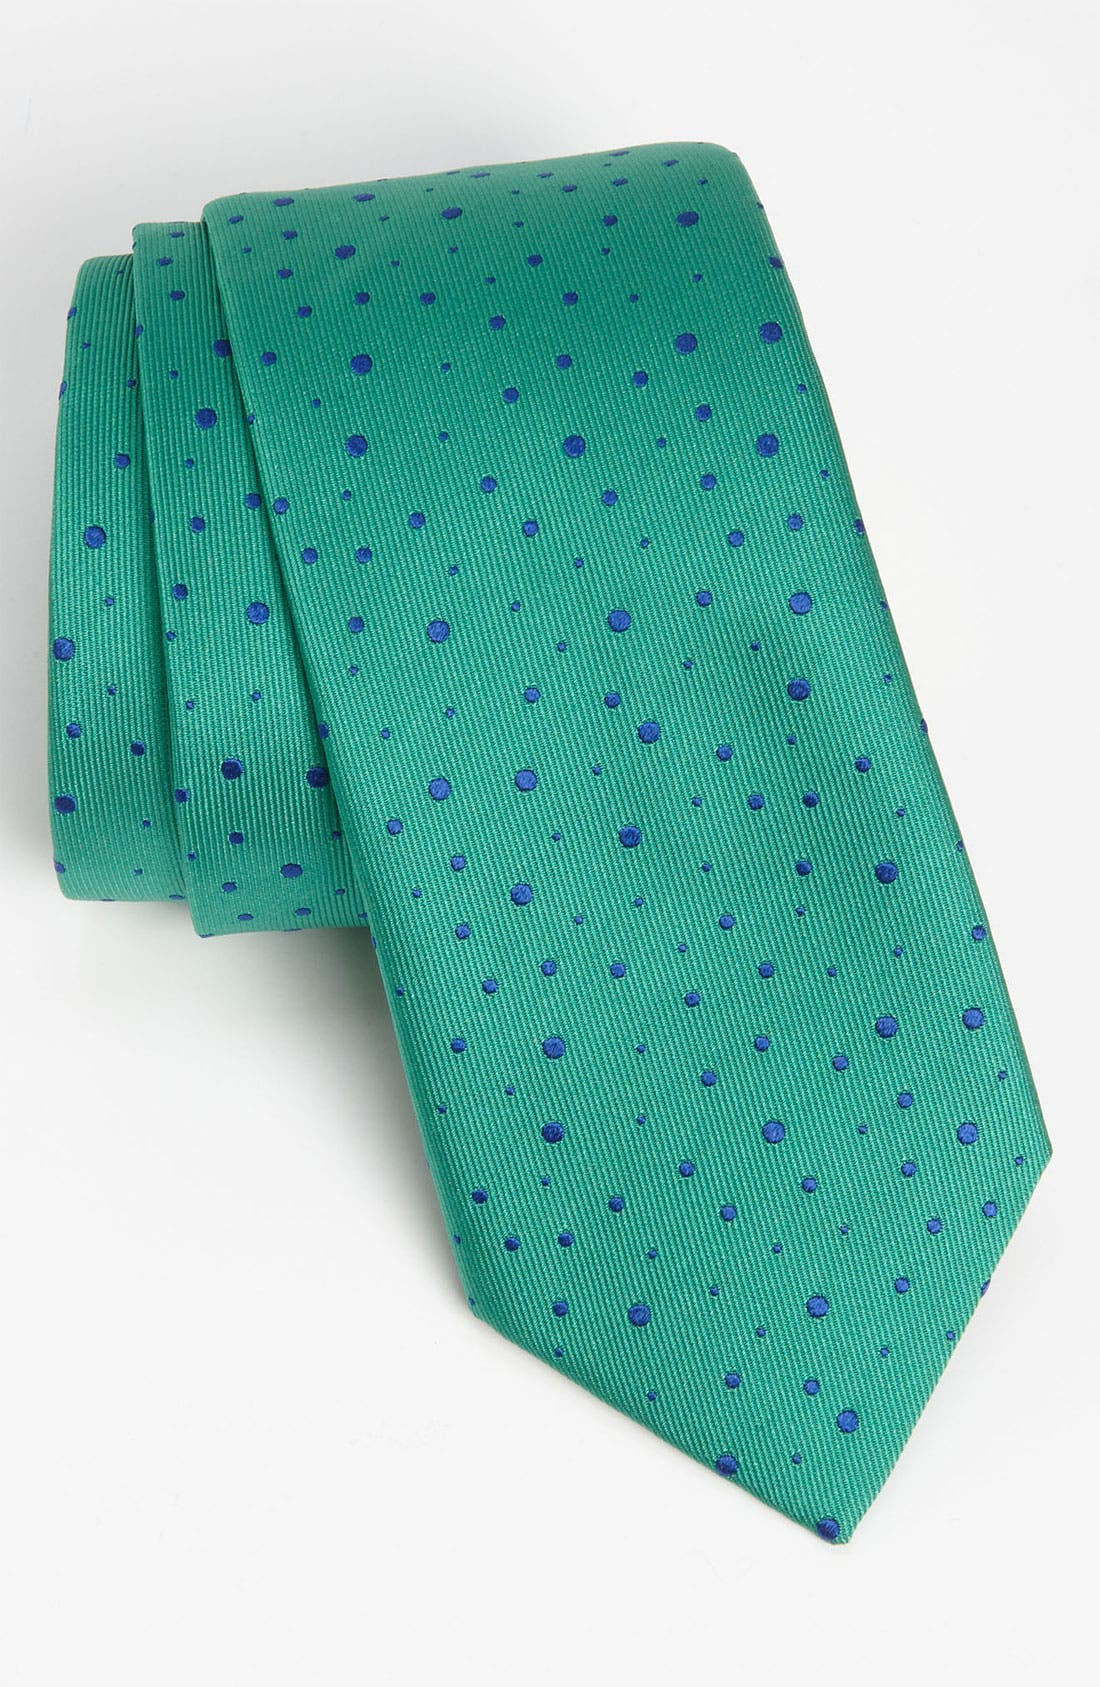 Alternate Image 1 Selected - Thomas Pink 'Balmoral Spot' Woven Silk Tie